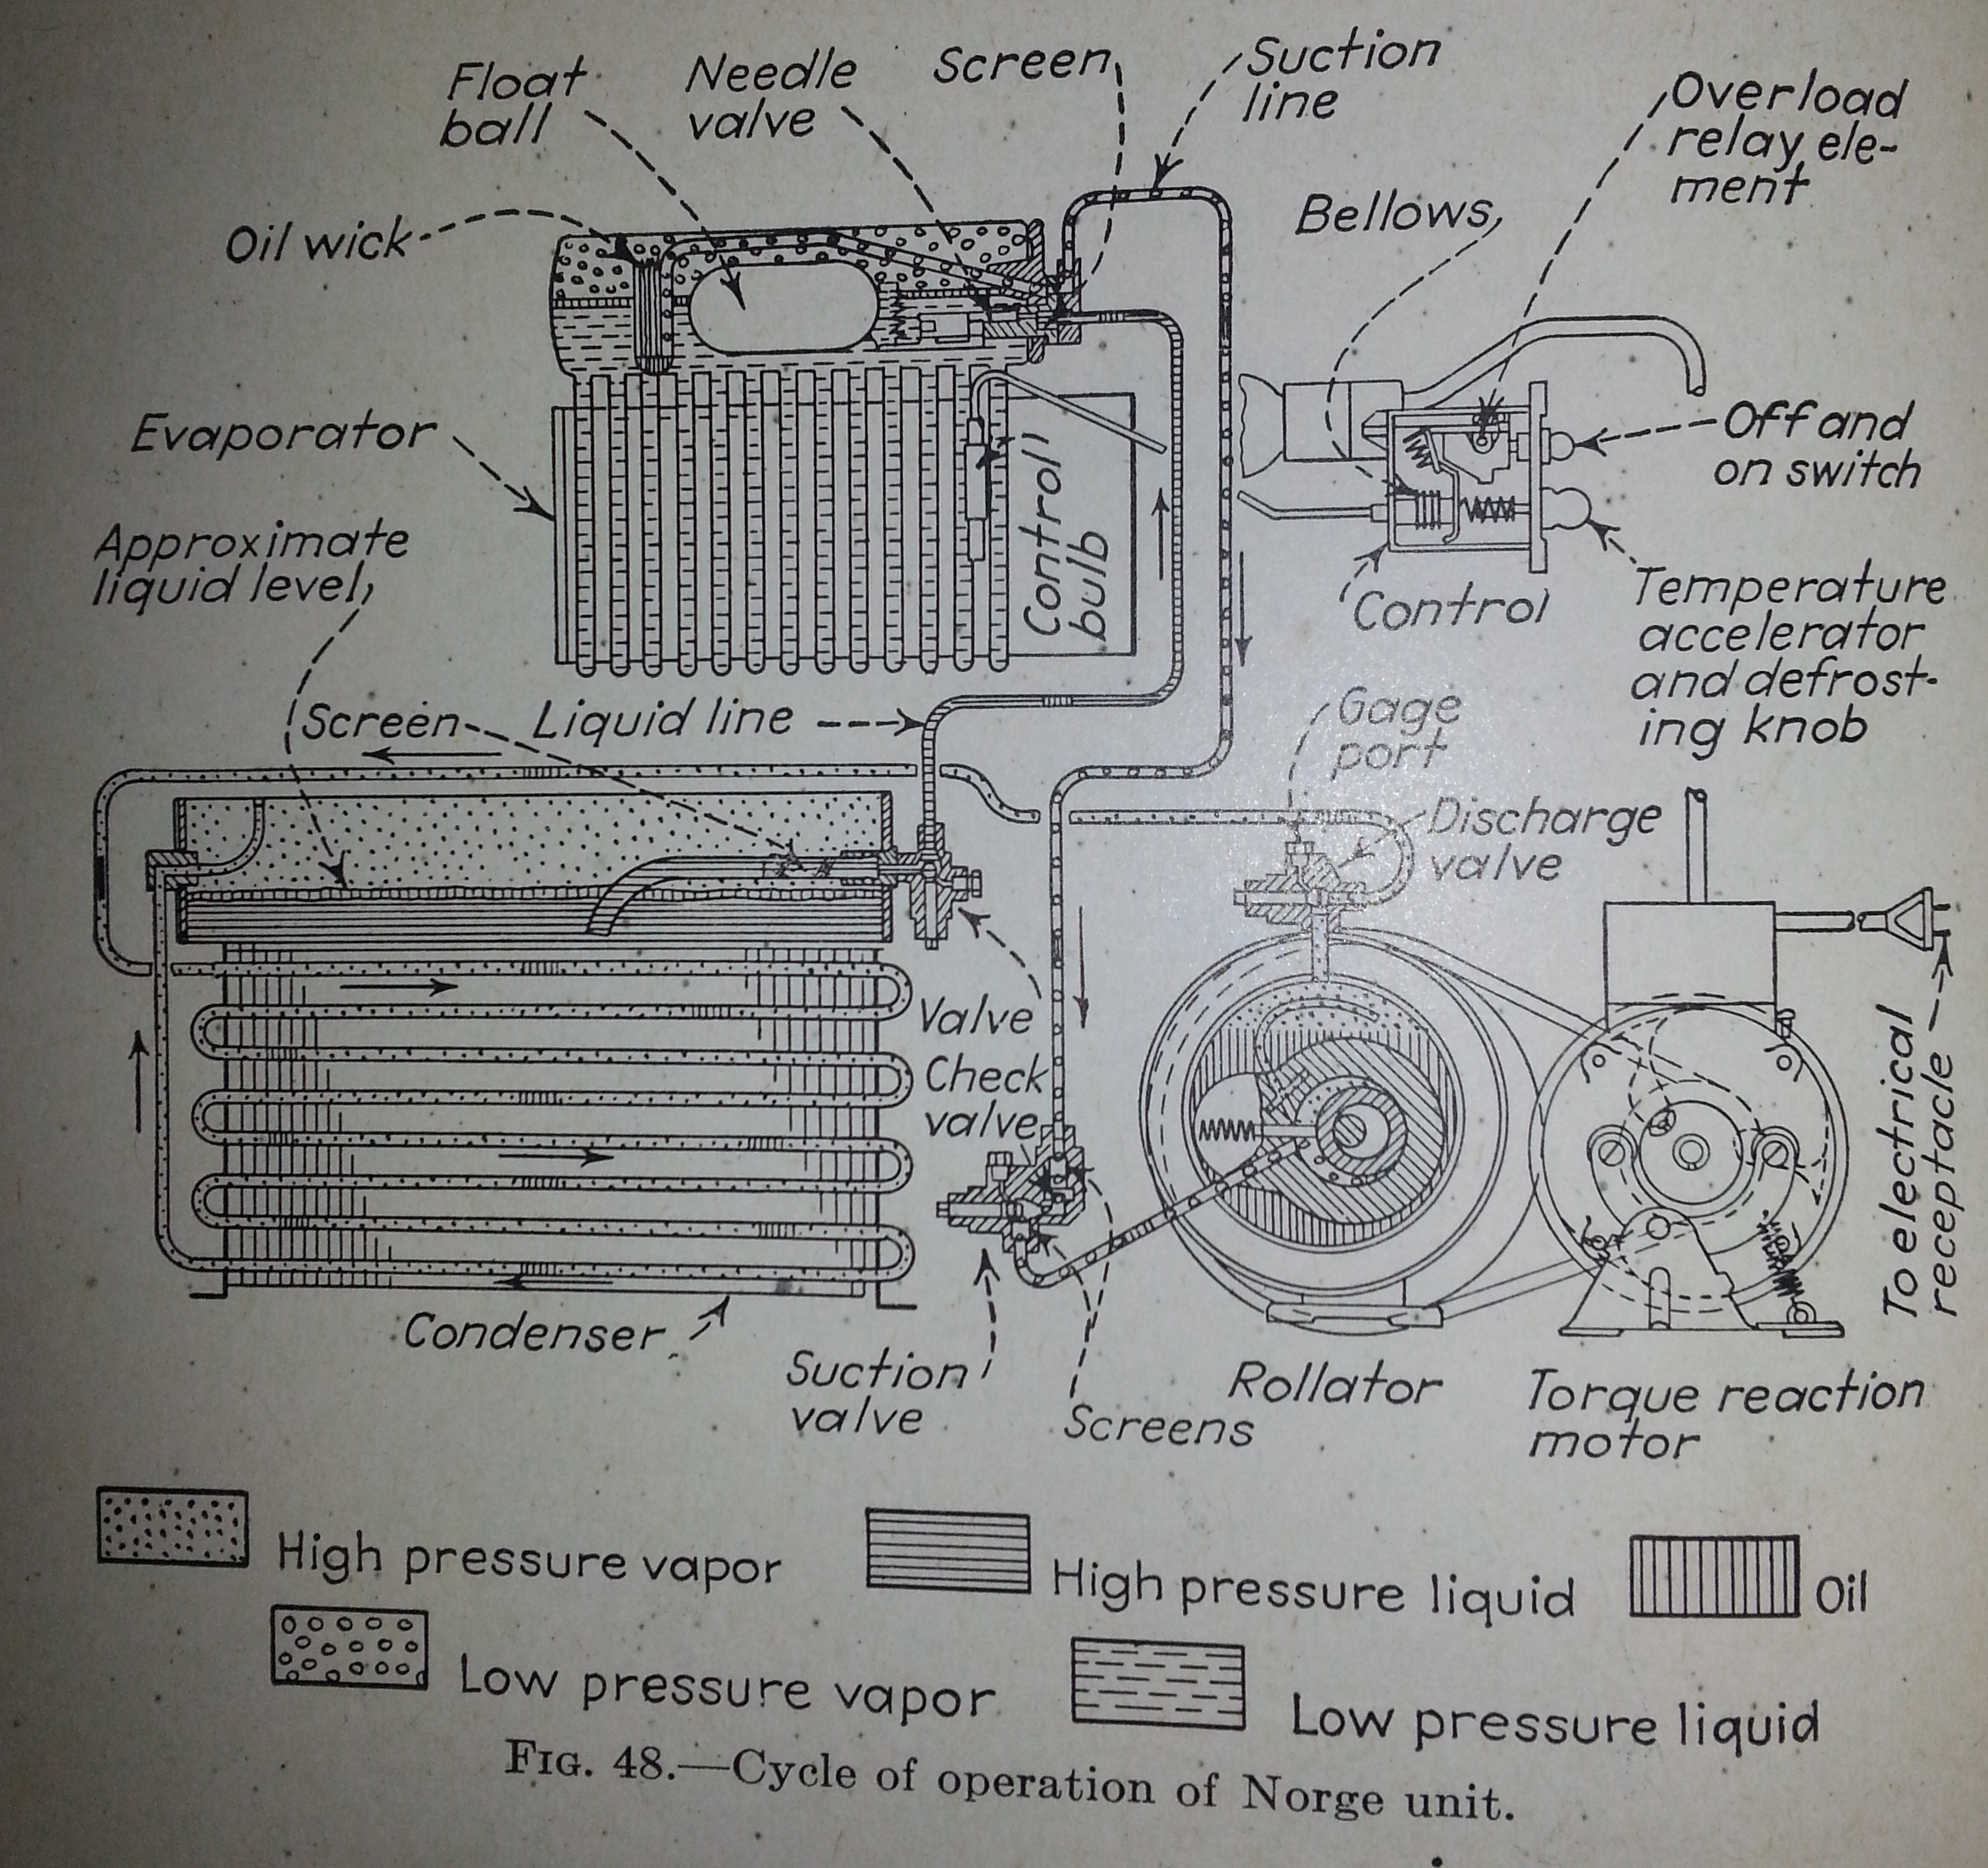 Refrigerators Parts Crosley Refrigerator Diagram On Whirlpool Compressor Good 1938 Frigidaire 2343 X 2202 1472 Kb Jpeg